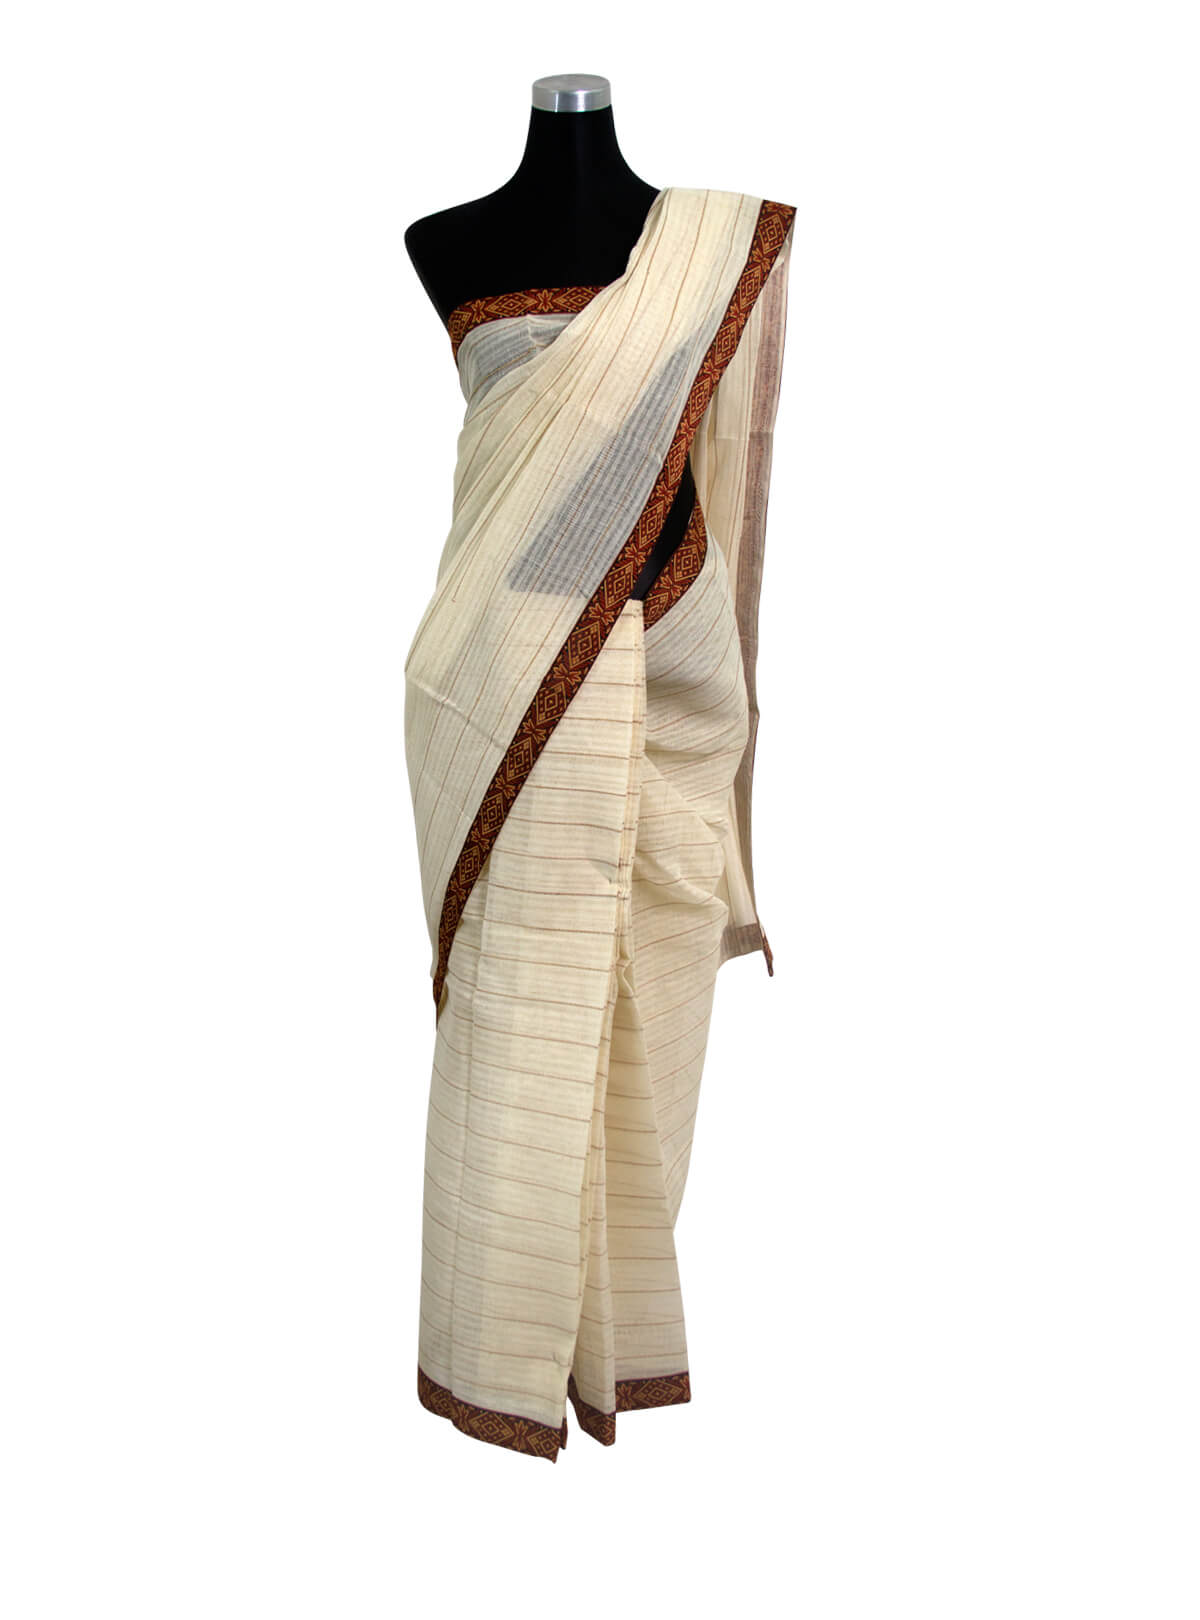 Spanish White Jute Saree